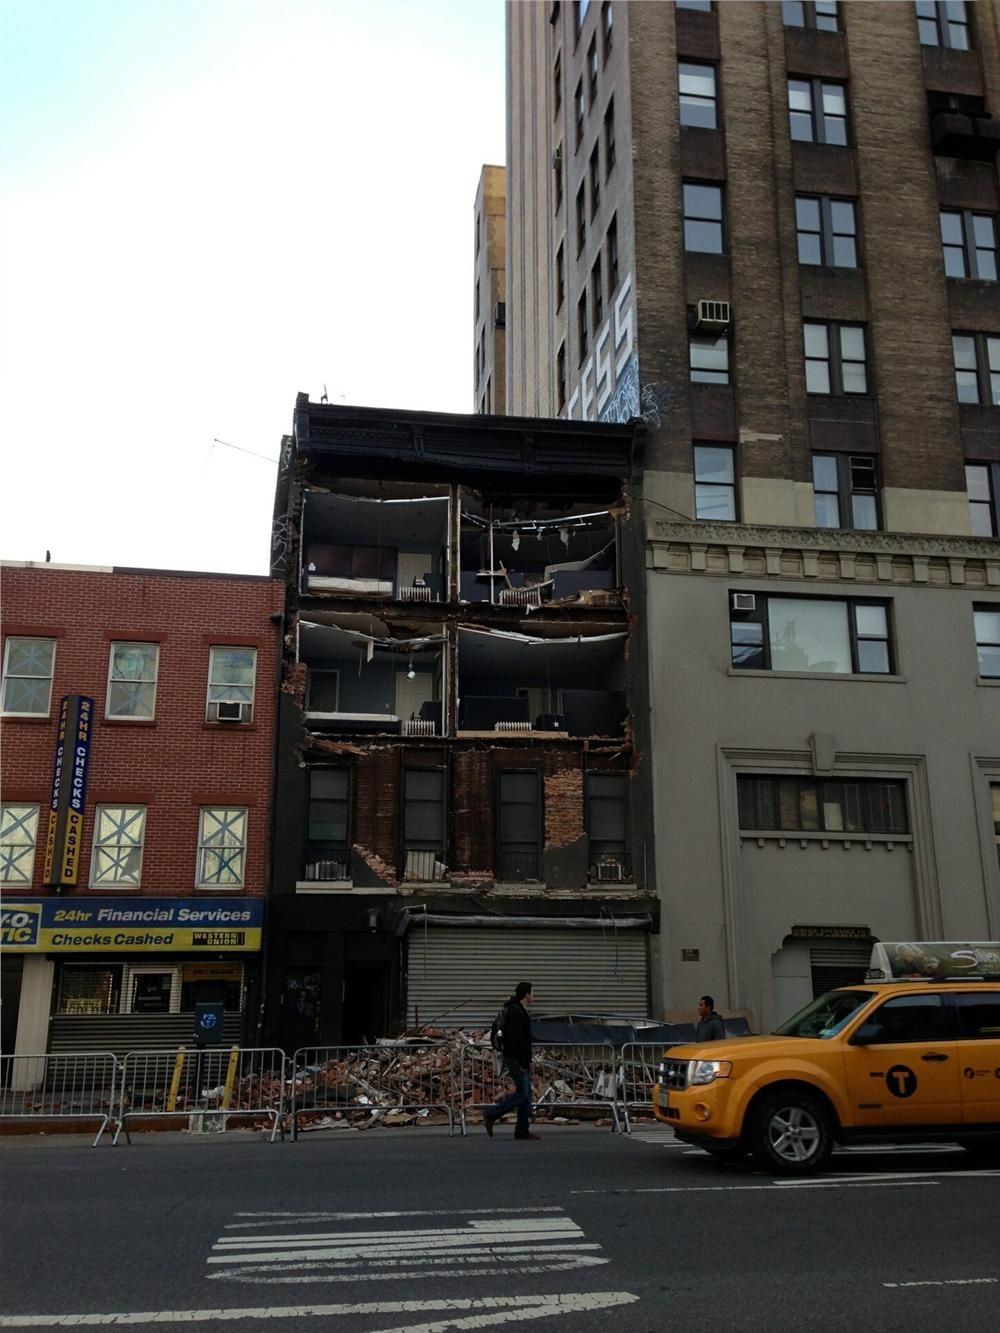 Damages have been estimated at $29.4 billion in New Jersey and $41.9 billion in New York, including about $19 billion in Manhattan.